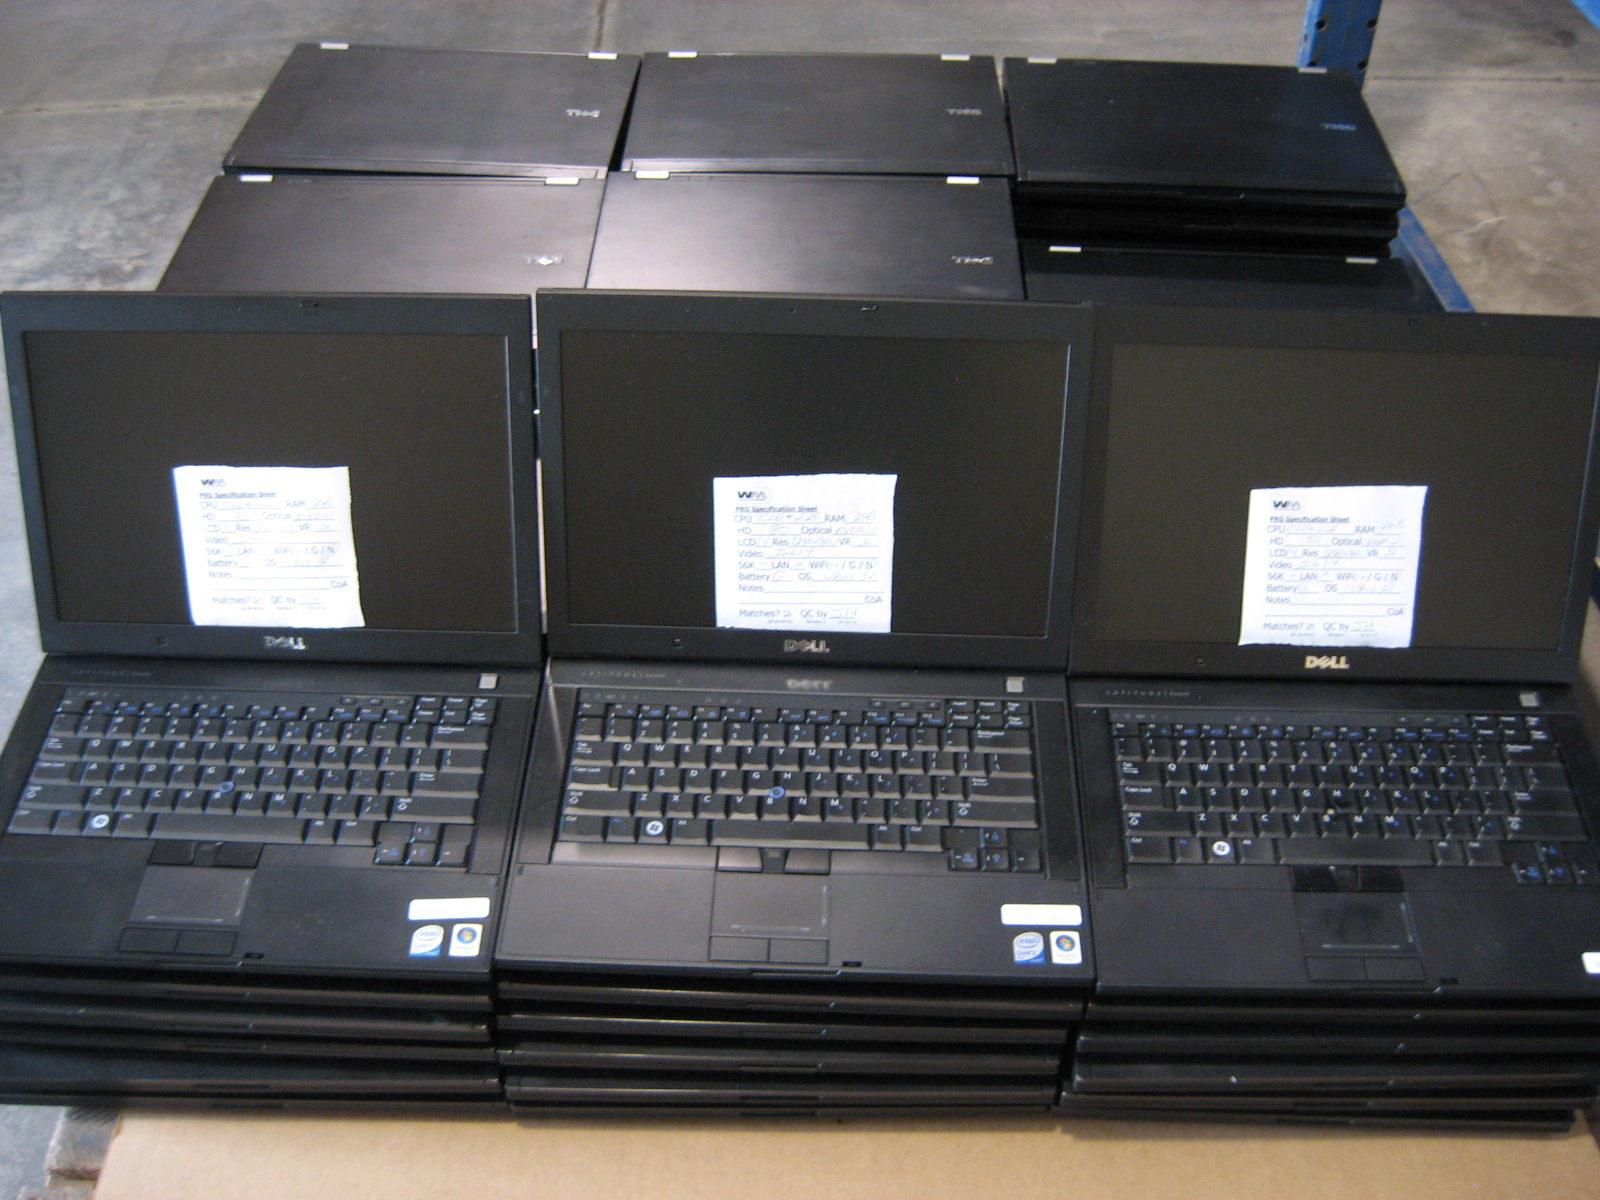 Pallet of E6400 All The Hot Black Friday Laptop Deals